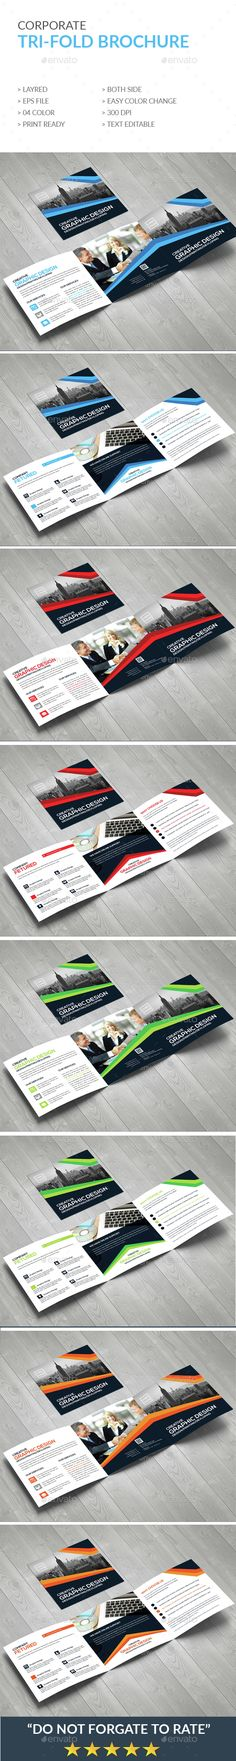 Trifold Brochure - Corporate #Brochures | Download http://graphicriver.net/item/trifold-brochure/15296251?ref=sinzo